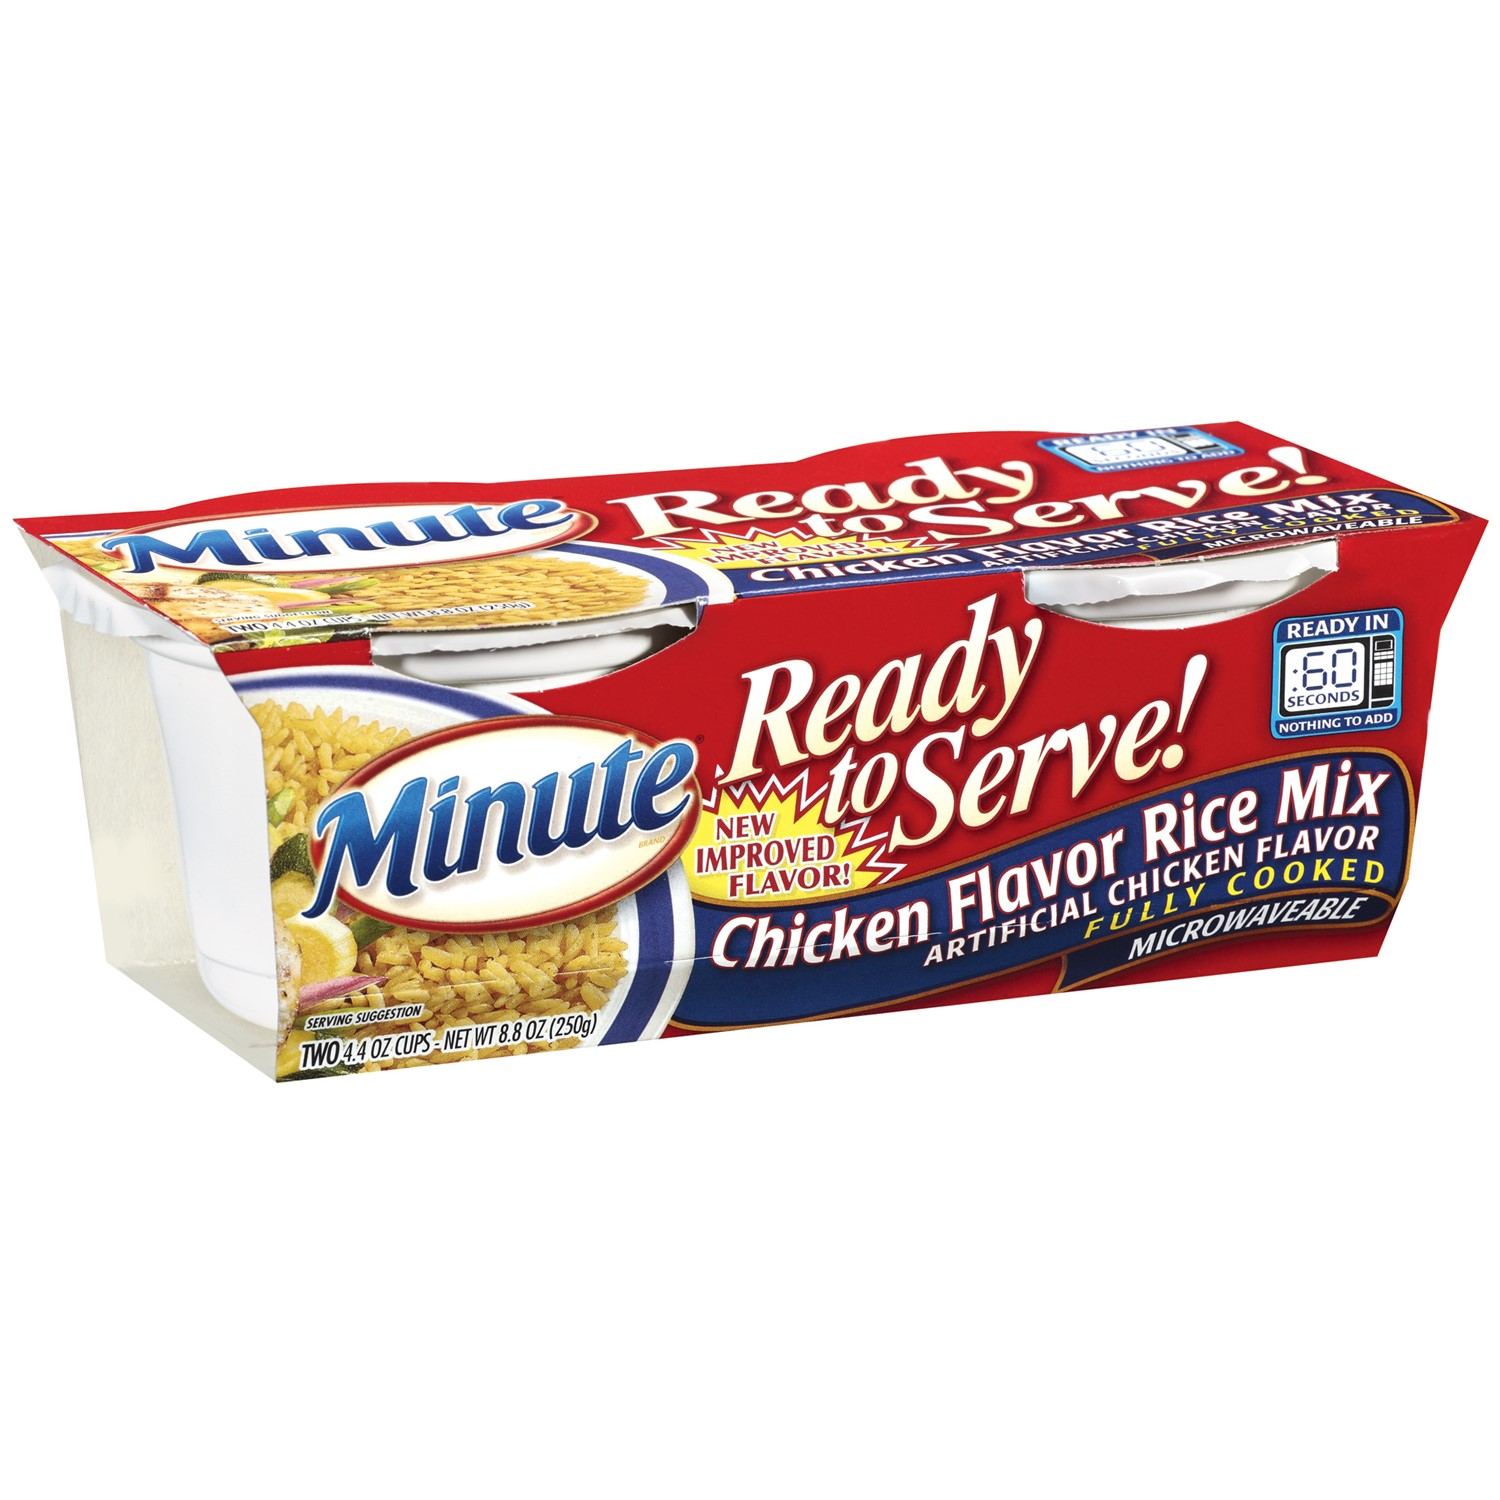 Minute Rice, Chicken Flavor, 4.4 oz, 2 Count Cups